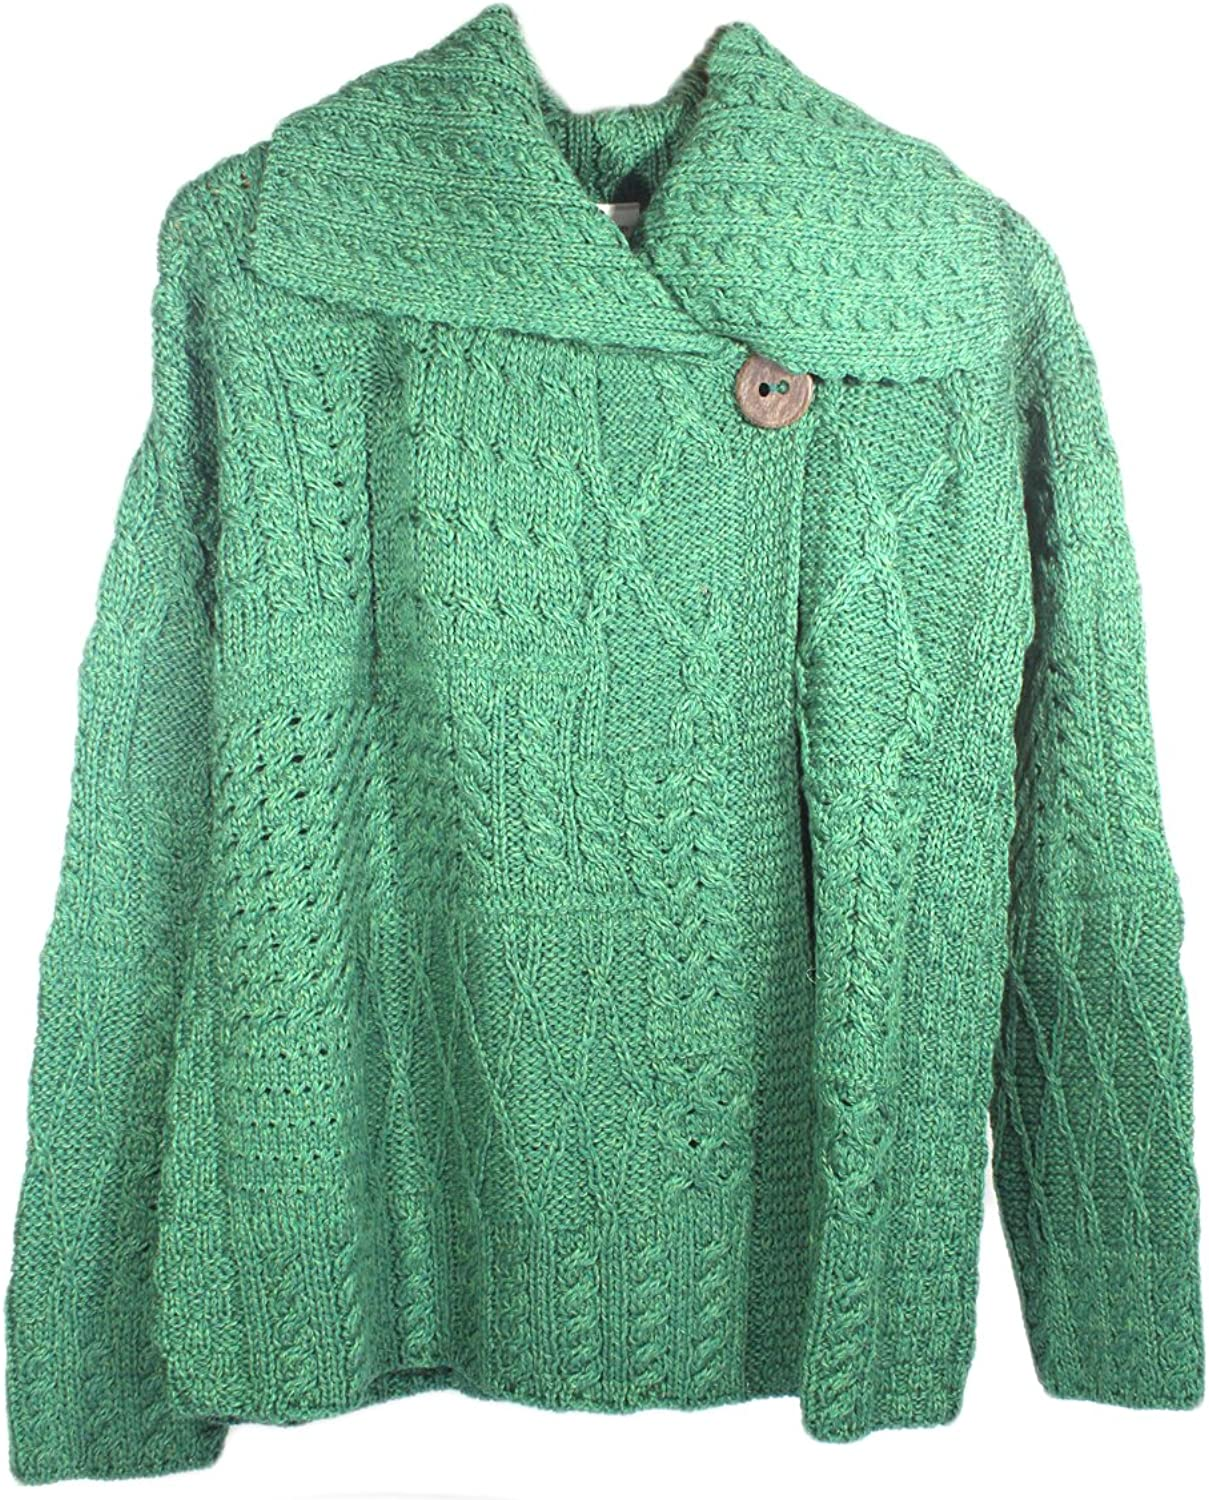 Carraig Donn Ladies Patchwork Cardigan, Kiwi Green